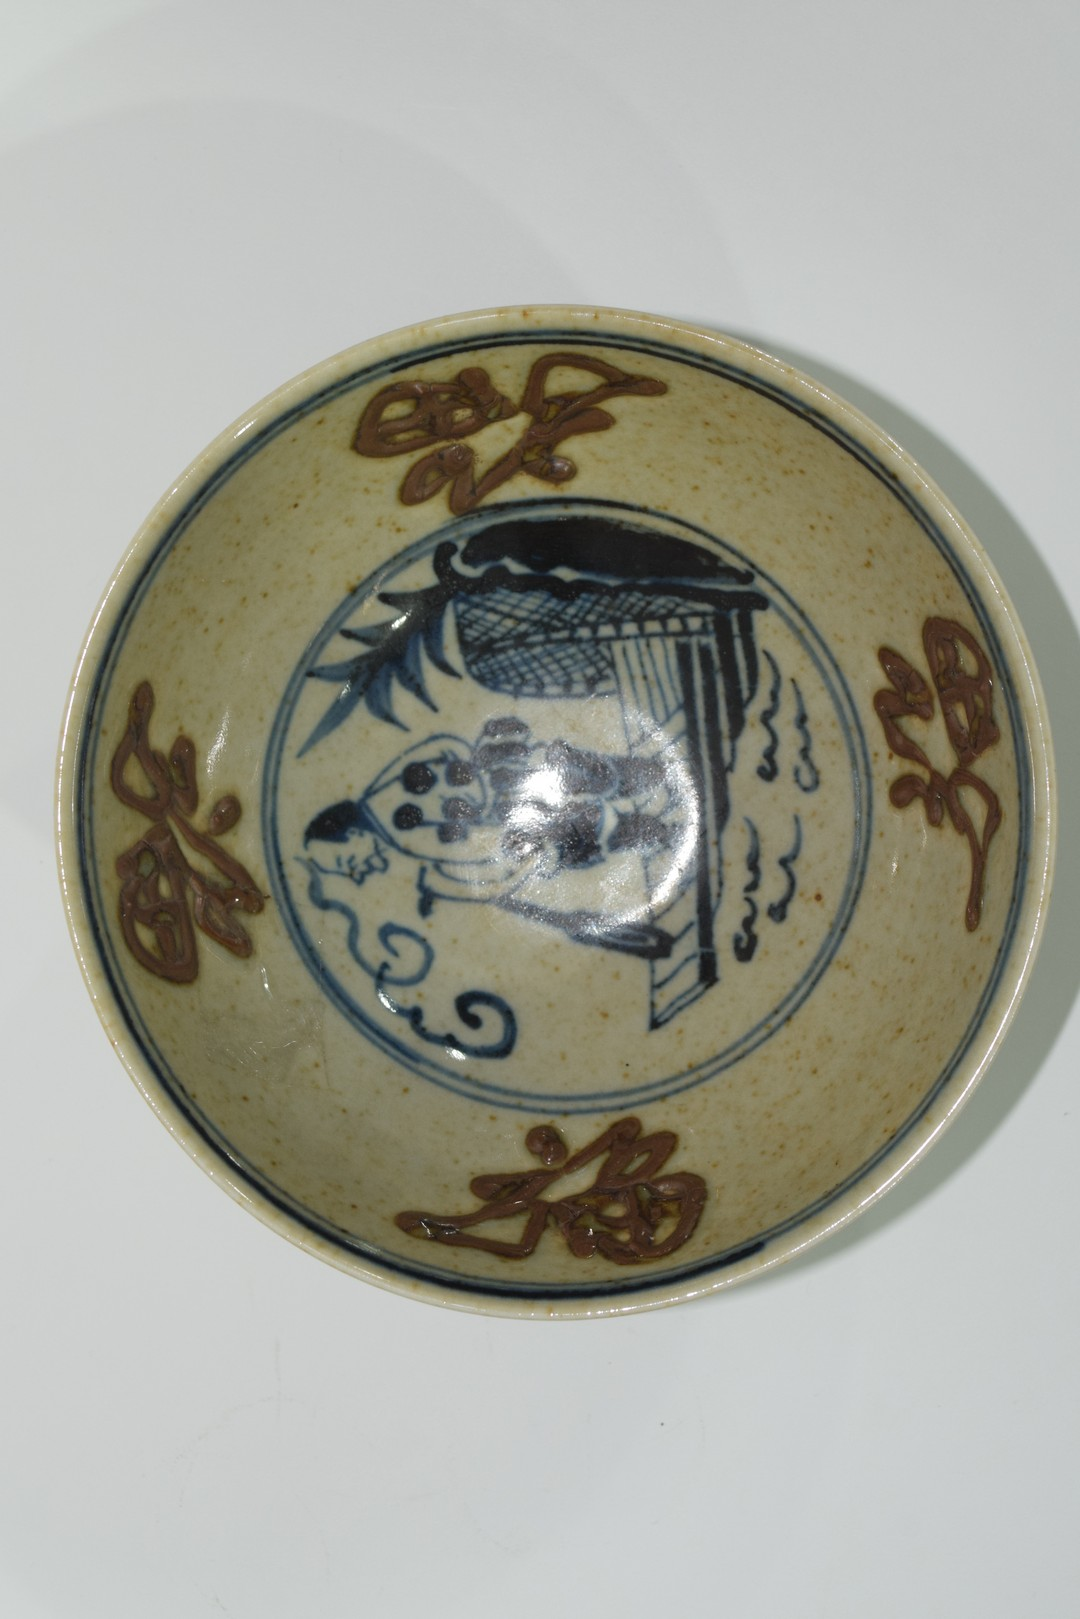 19th century Chinese porcelain bowl - Image 15 of 17